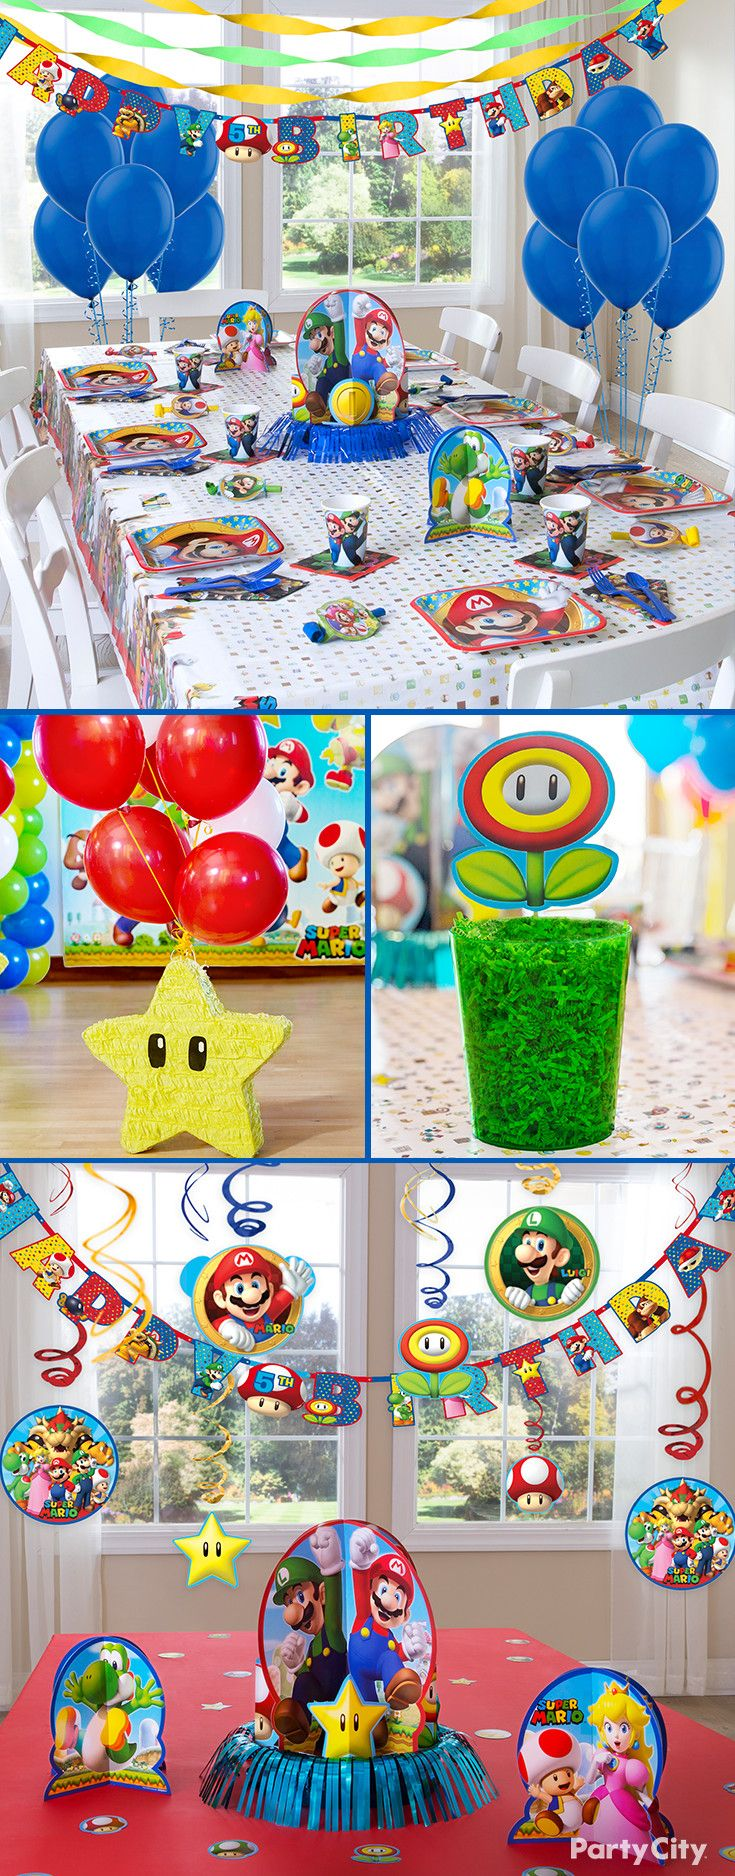 Let's-a go! One-up your party decorating with Party City's Super Mario birthday collection. Cups, plates, favors, balloons, banners—we've got enough party supplies to create Princess Peach's Castle!